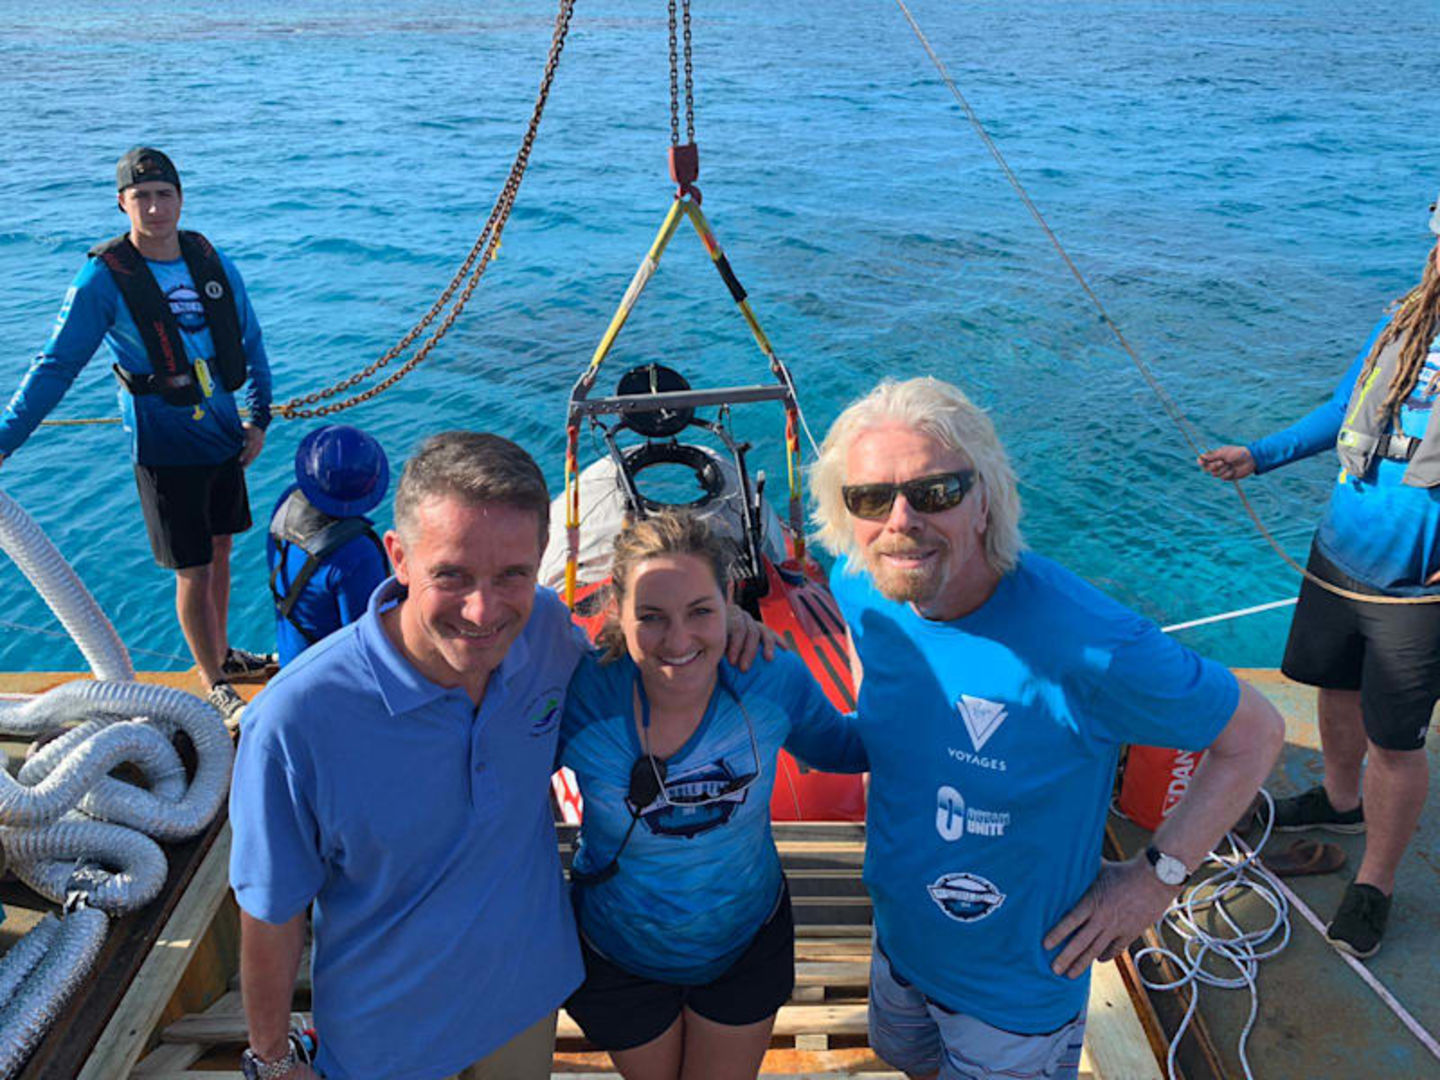 Richard Branson dressed in blue standing on a ship with four people